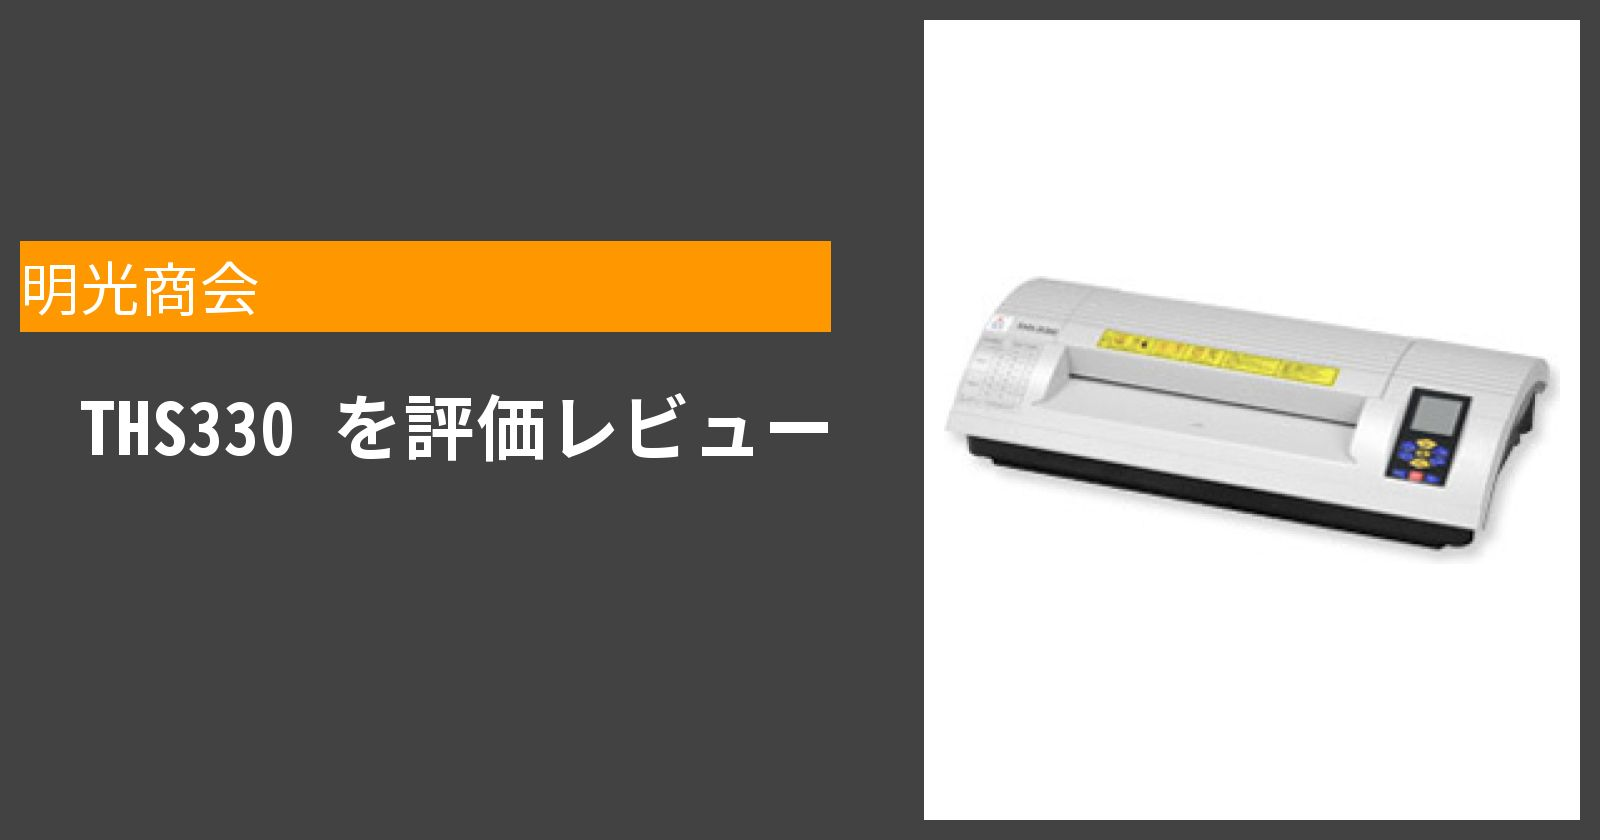 THS330を徹底評価